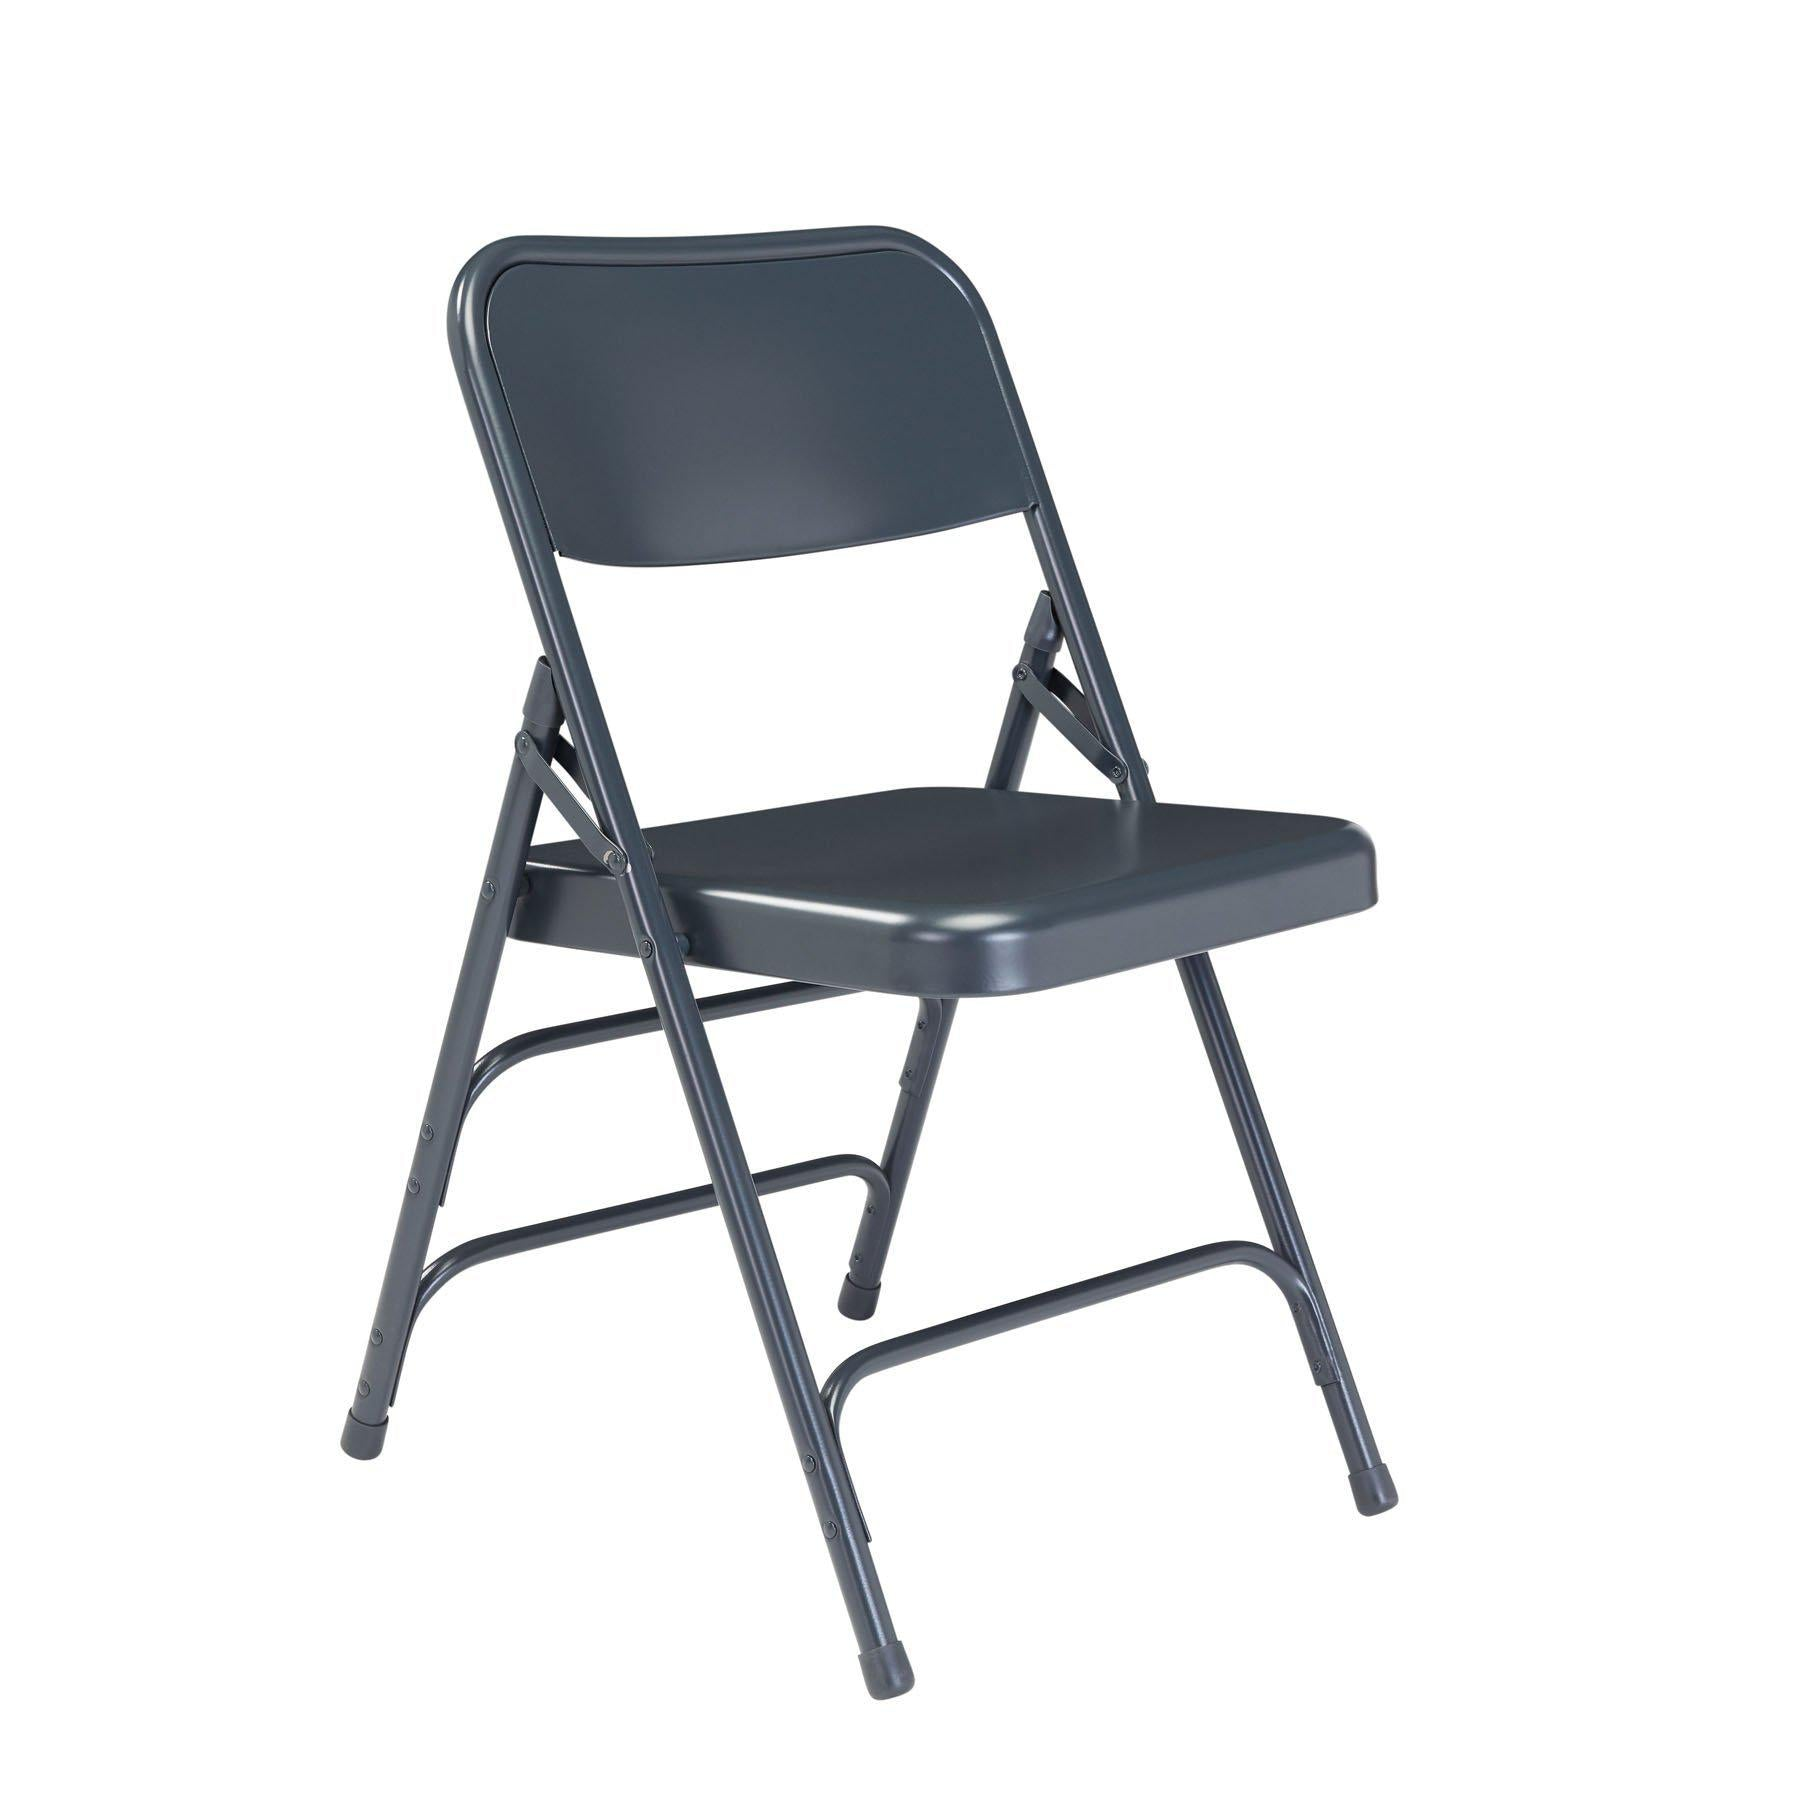 Deluxe All-Steel Triple Brace Double Hinge Folding Chair